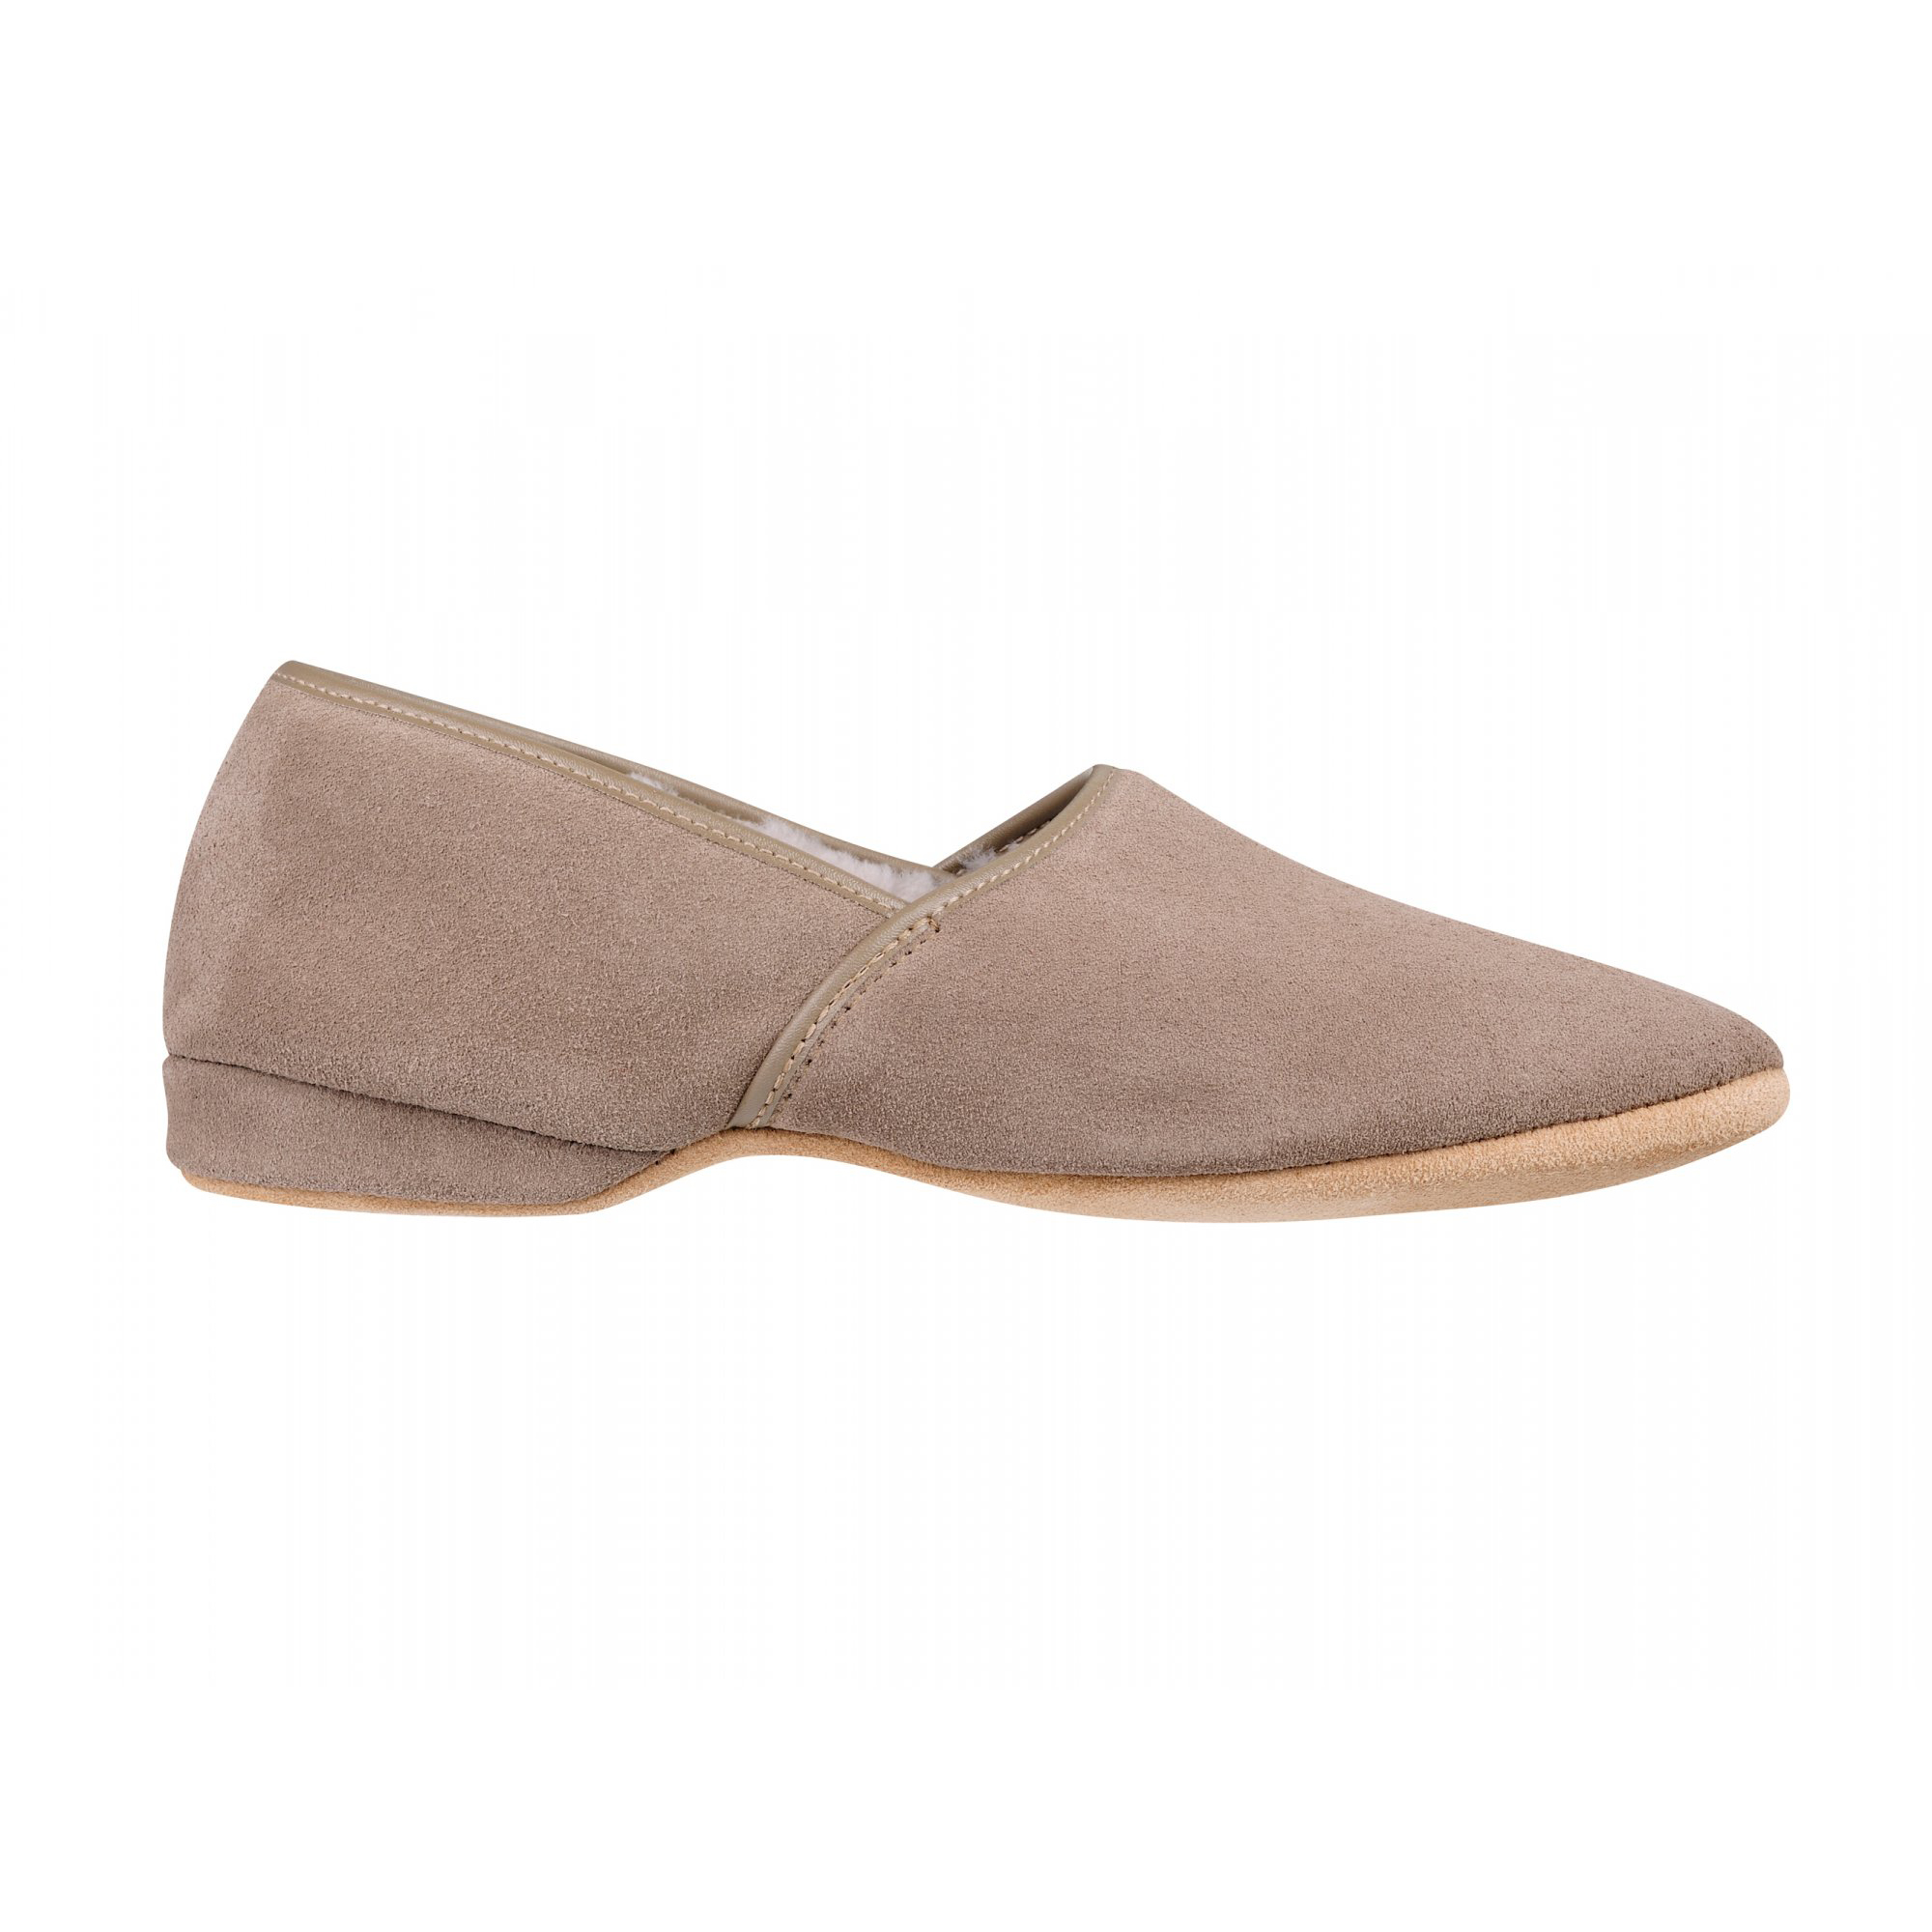 Derek Rose Crawford Shearling-Lined Suede Slippers free shipping professional 2014 newest cheap price k2Ehzs